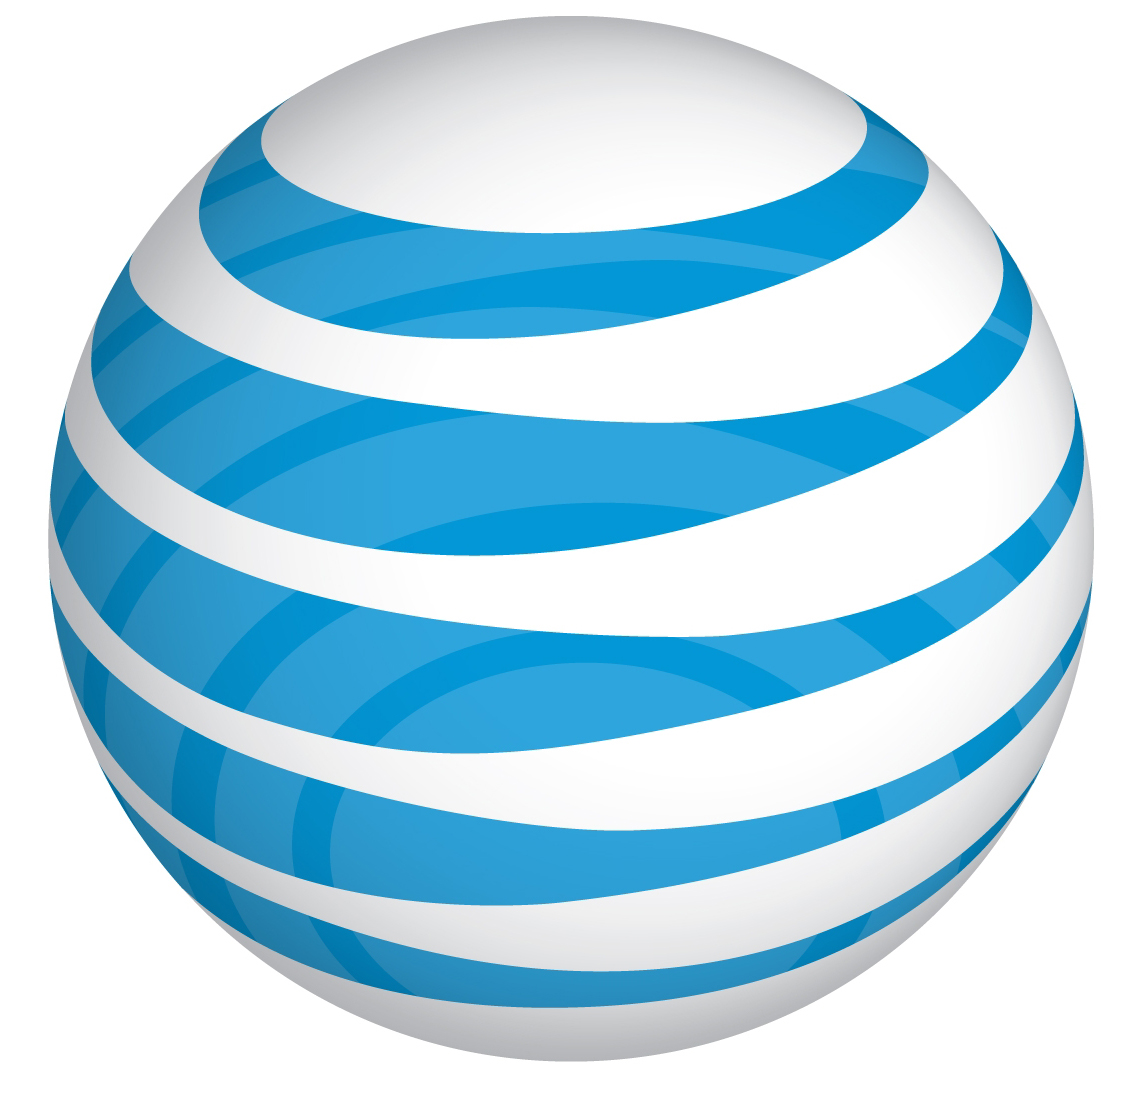 AT&T Hopes to Complete LTE Rollout By 2014